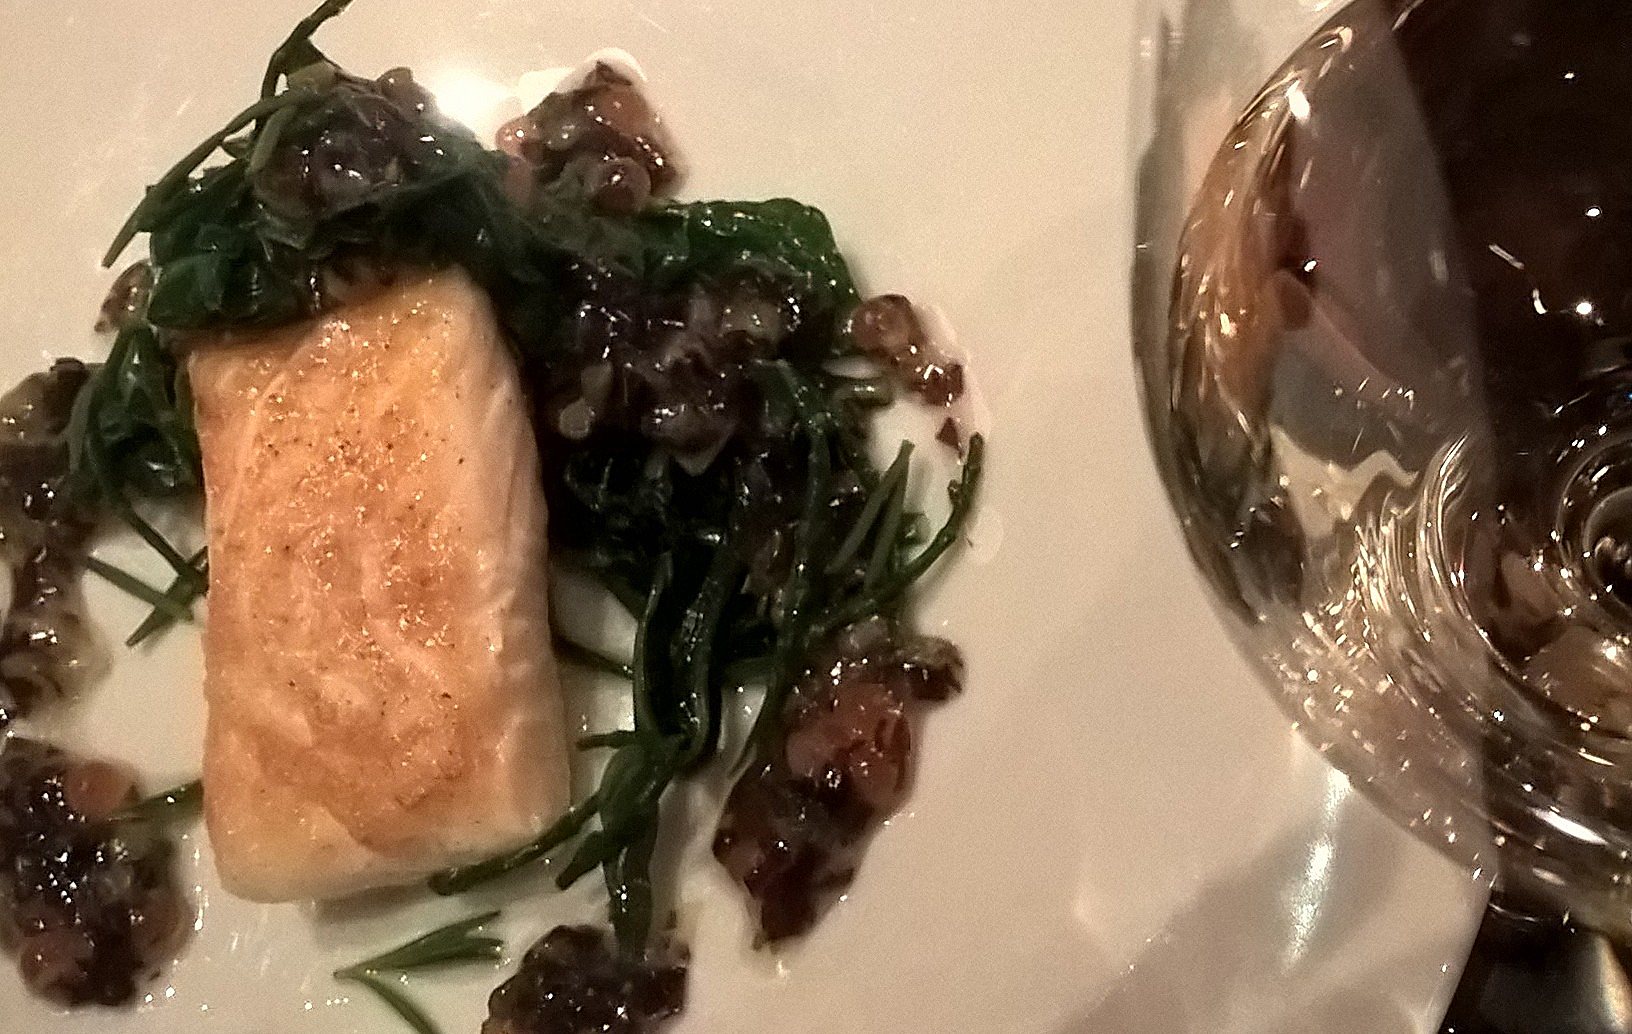 The tasty halibut - but not a lot for £38. This dish was inspired by one from c1830